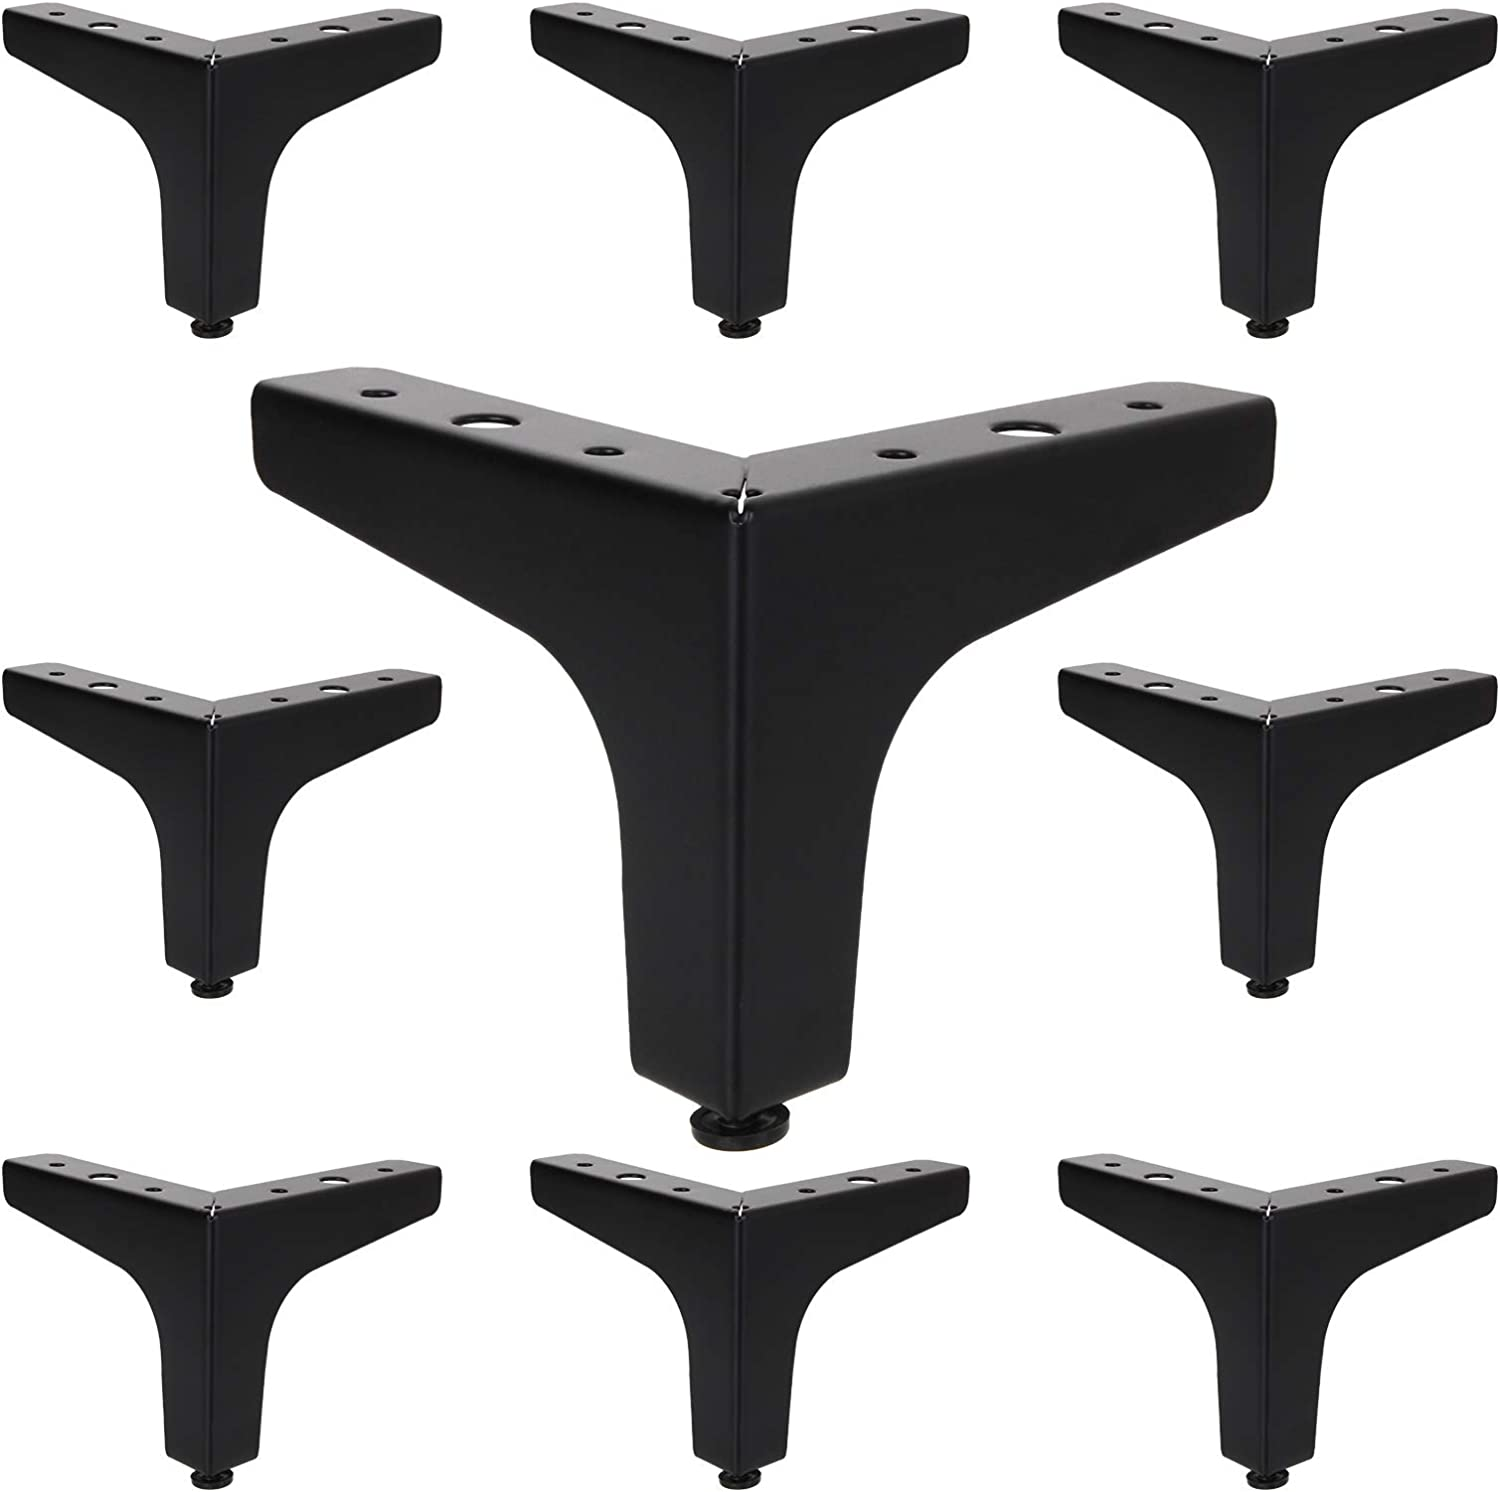 16Pack Metal Furniture Sofa Legs, 4inch Modern Style DIY Furniture Feet Replacement, Black Triangle Table Cabinet Cupboard Feet Heavy Duty for Dresser Coffee Table Desk Wardrobes Couch Bookcase